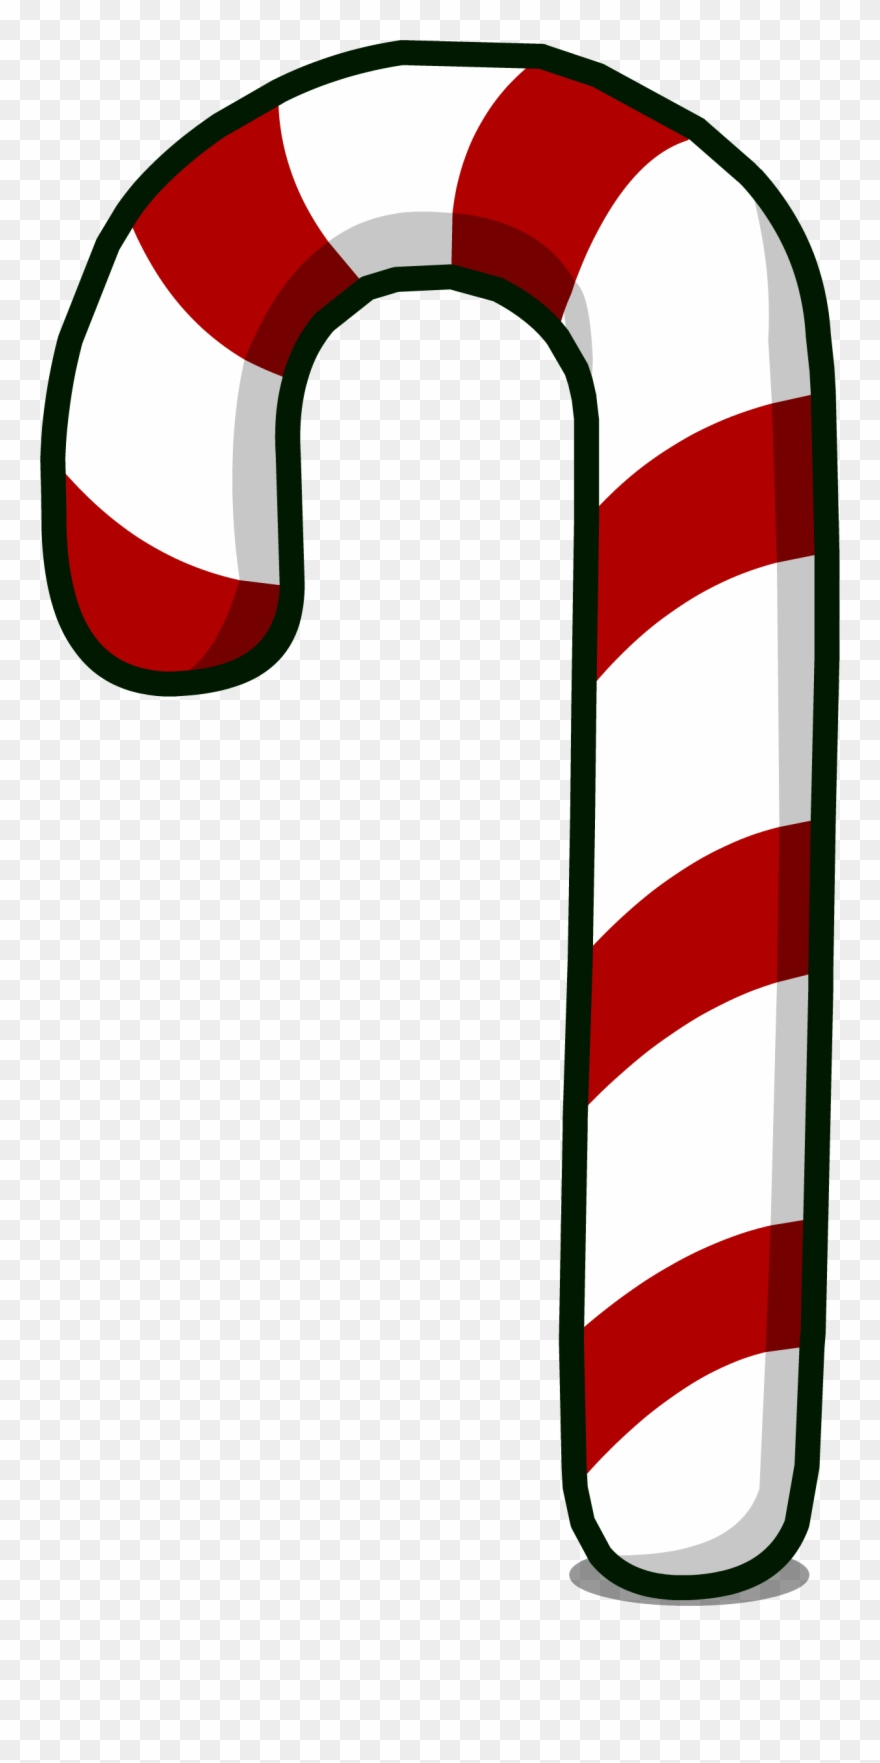 Christmas Candy Canes Clipart 15 Clip Art Cane.